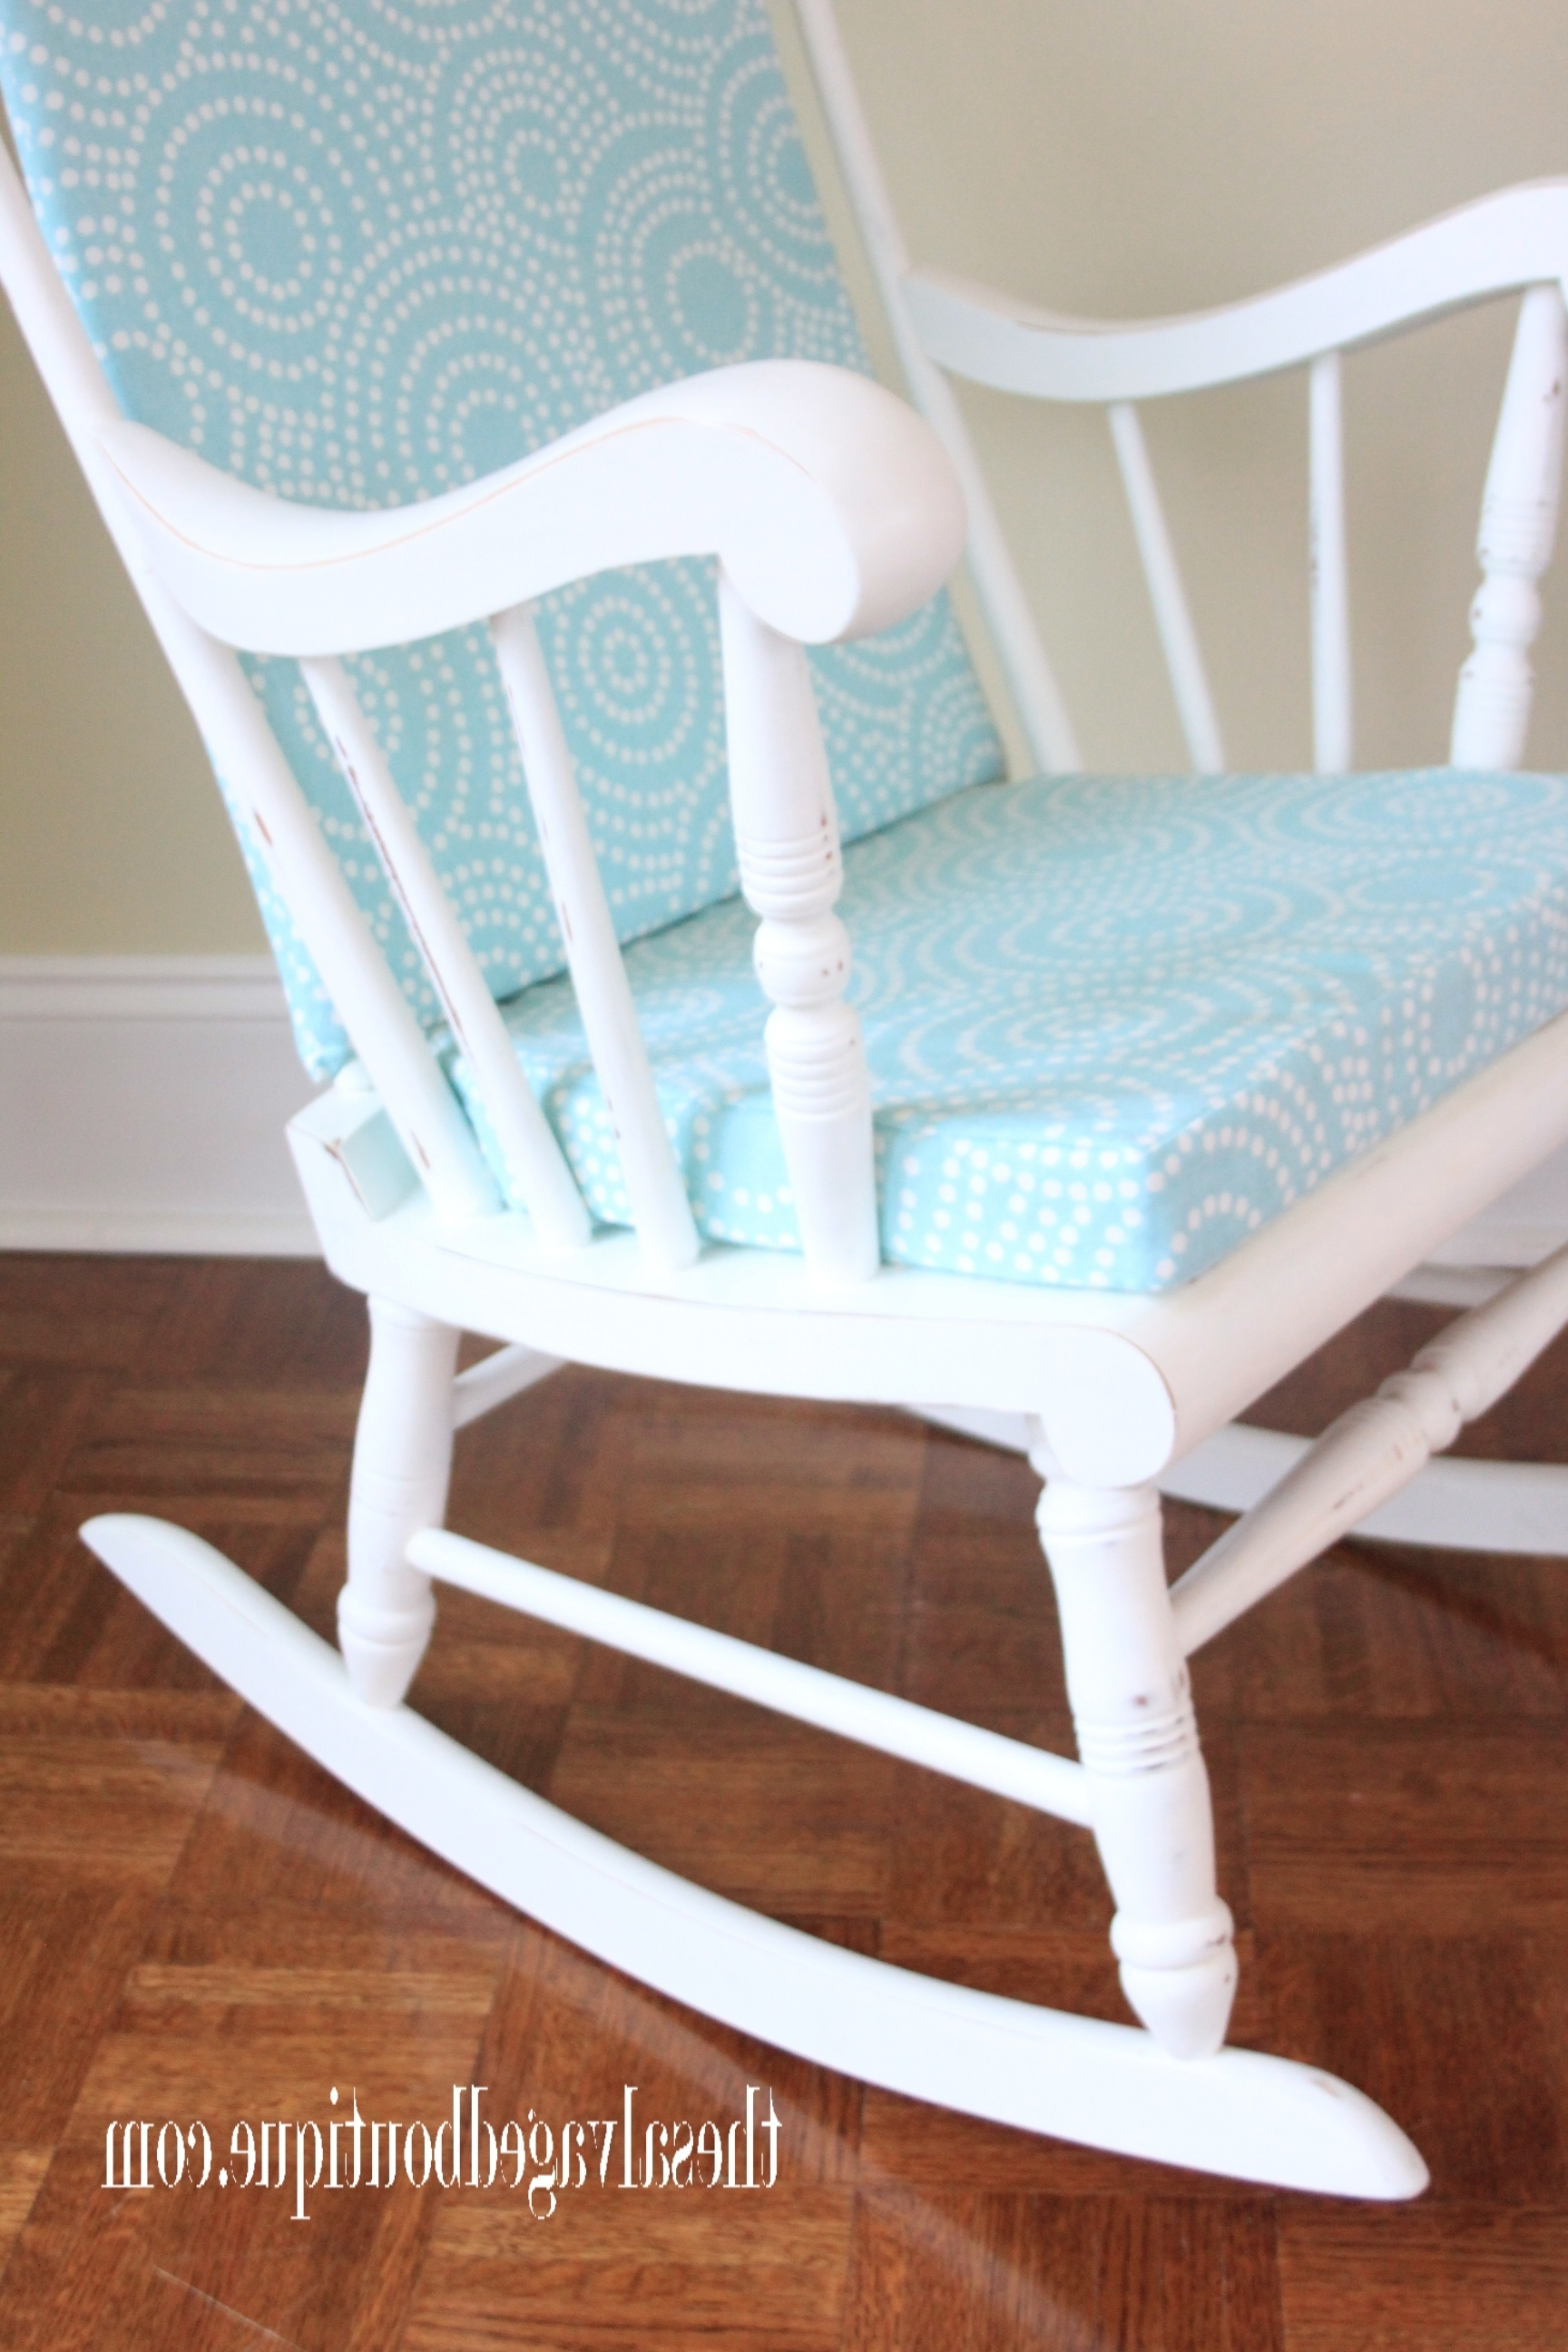 Upcycled Rocking Chairs Throughout Most Current Grandpa's Rocking Chair Brightened Up For New Baby Nursery (View 3 of 15)